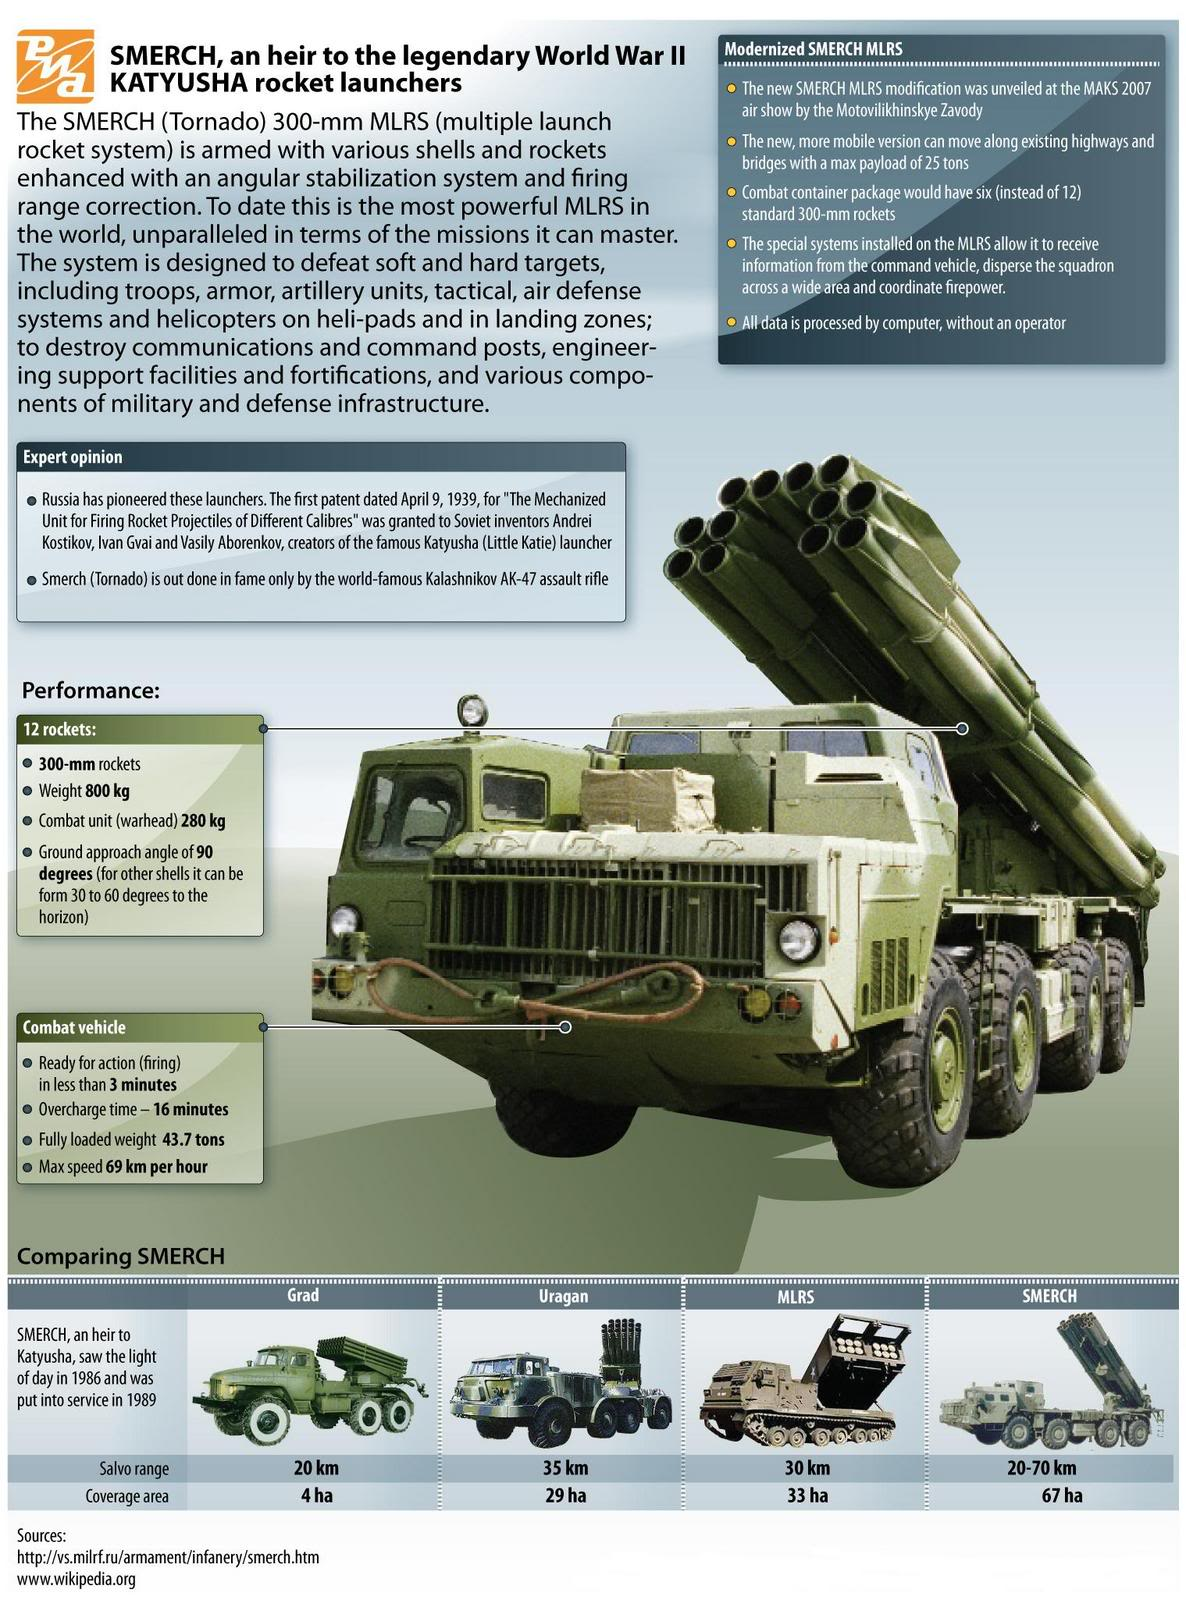 MLRS - Multiple Launch Rocket System SMERCH10